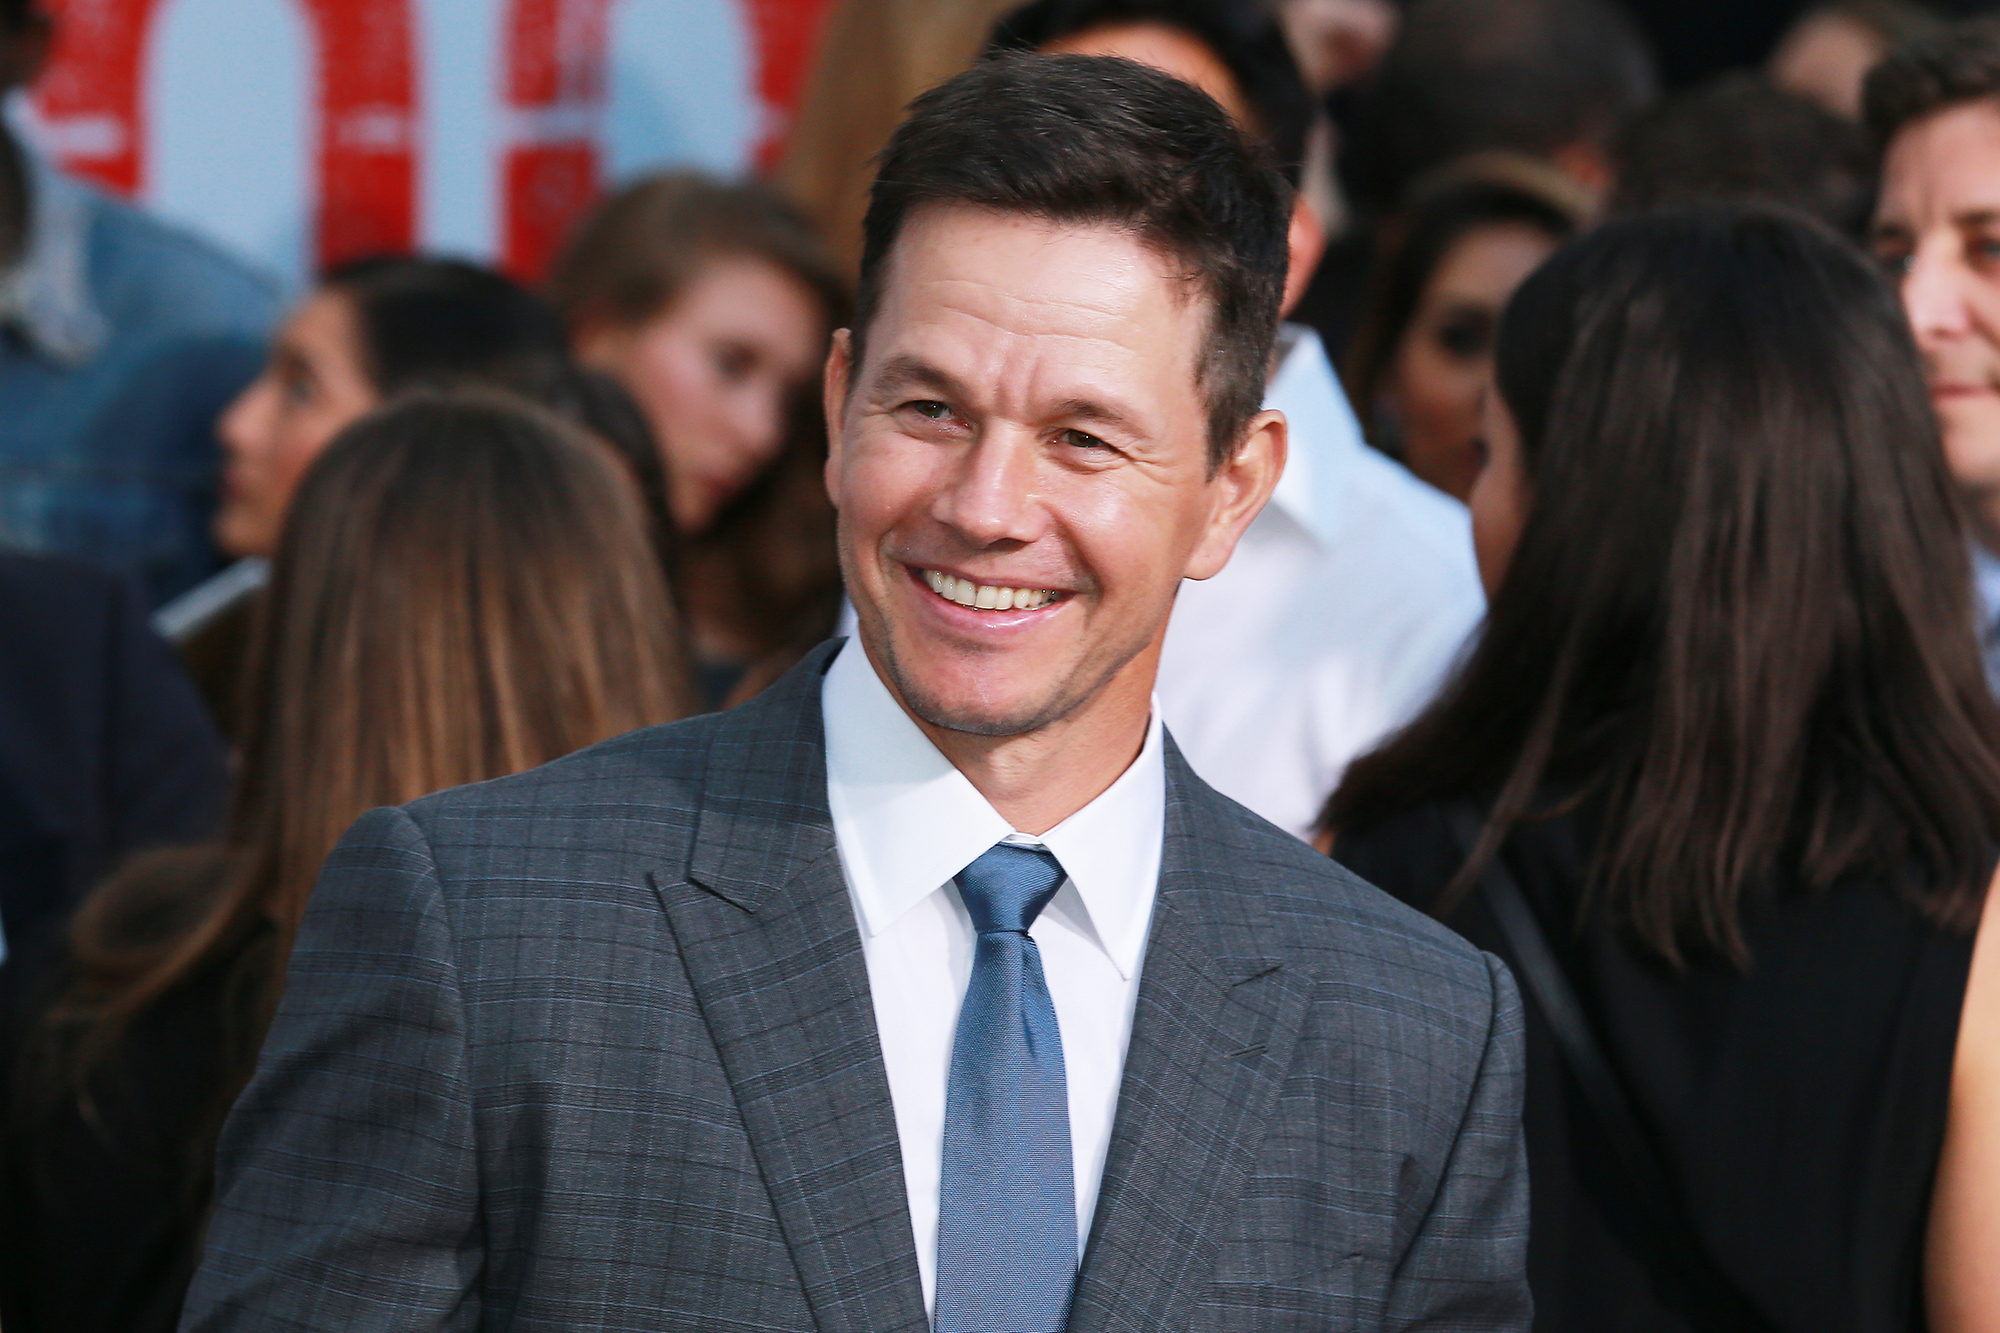 Celebrities Who Own Restaurants: Jay-Z, Ryan Gosling, Armie Hammer and More - The Patriots Day star is part owner of a chain of 26 Wahlburgers restaurants in North America and Canada. The restaurant empire, which was founded in 2011, is run by the Oscar nominee's brother, chef Paul Wahlberg.